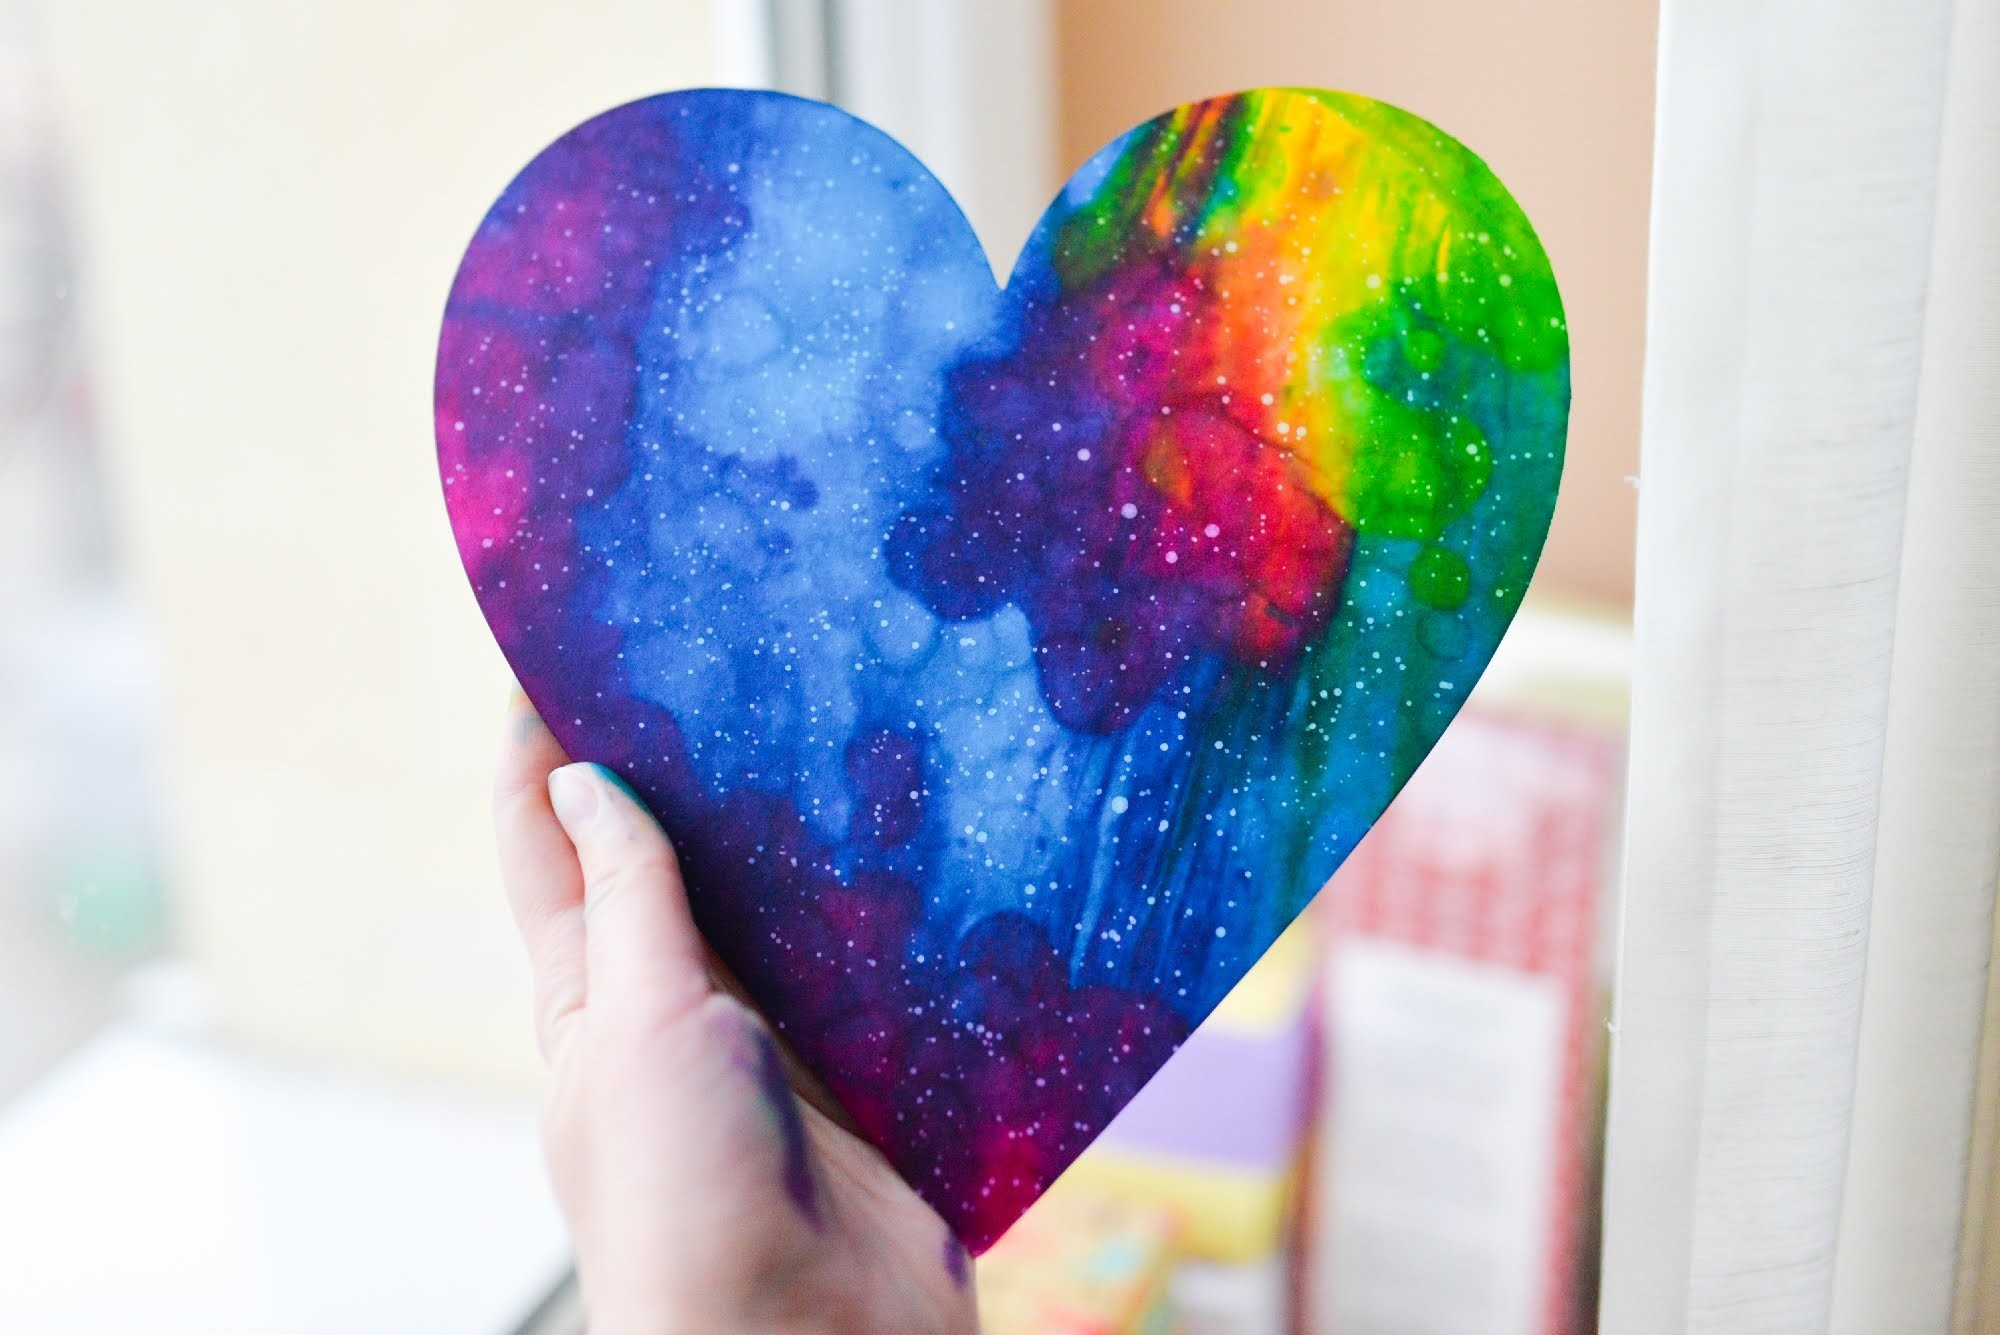 How to Make - Watercolor Galaxy Heart Valentine's Day - Step by Step | Serce Kosmos Galaktyka